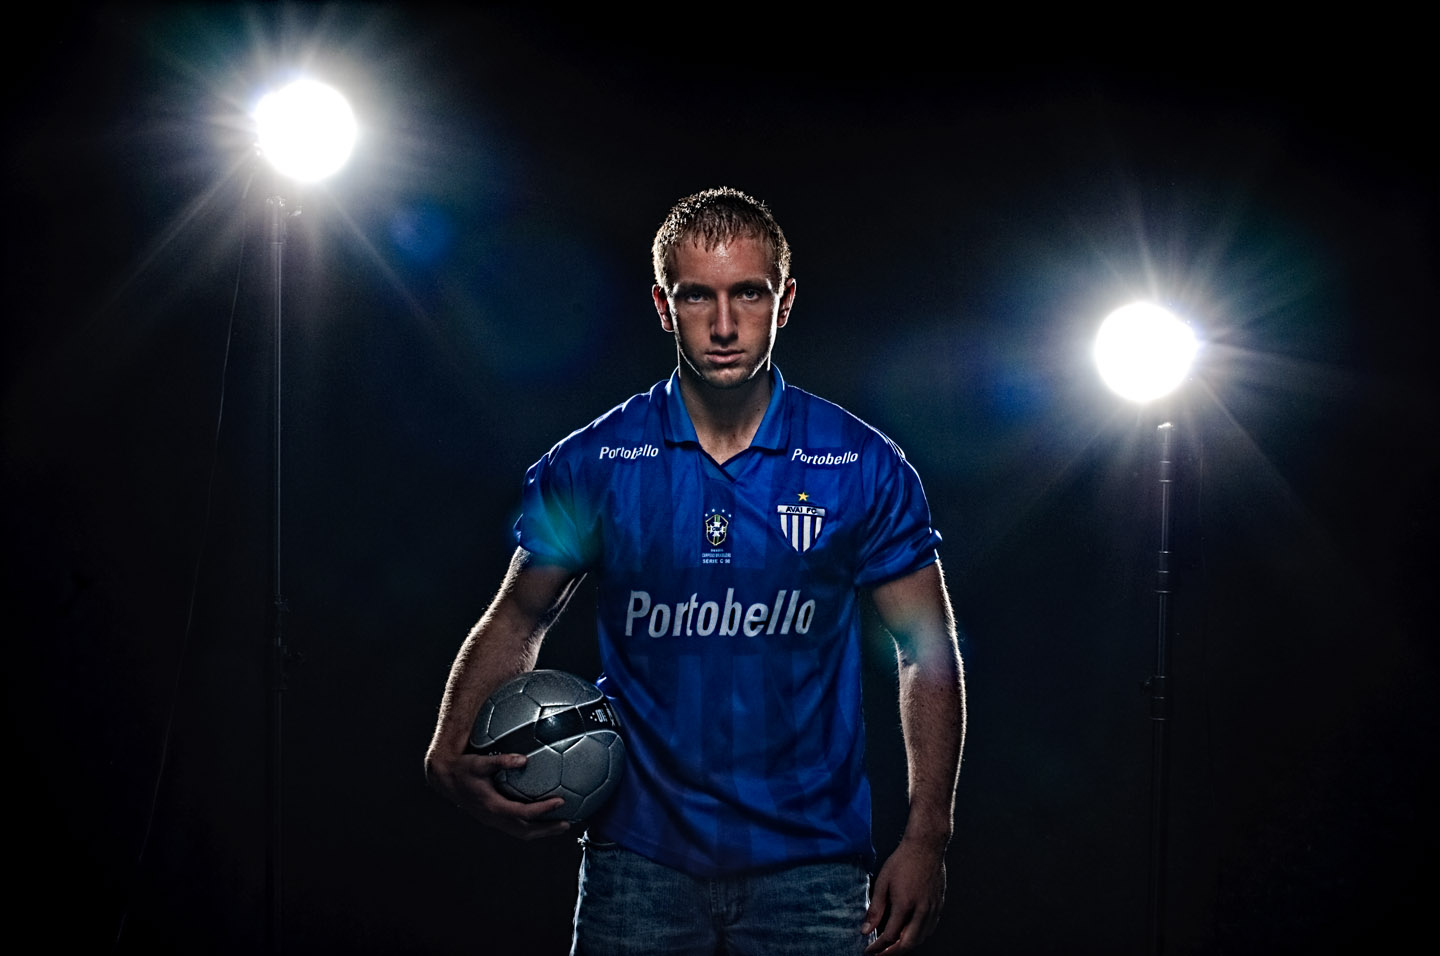 Creating stadium lighting in studio for a soccer portrait